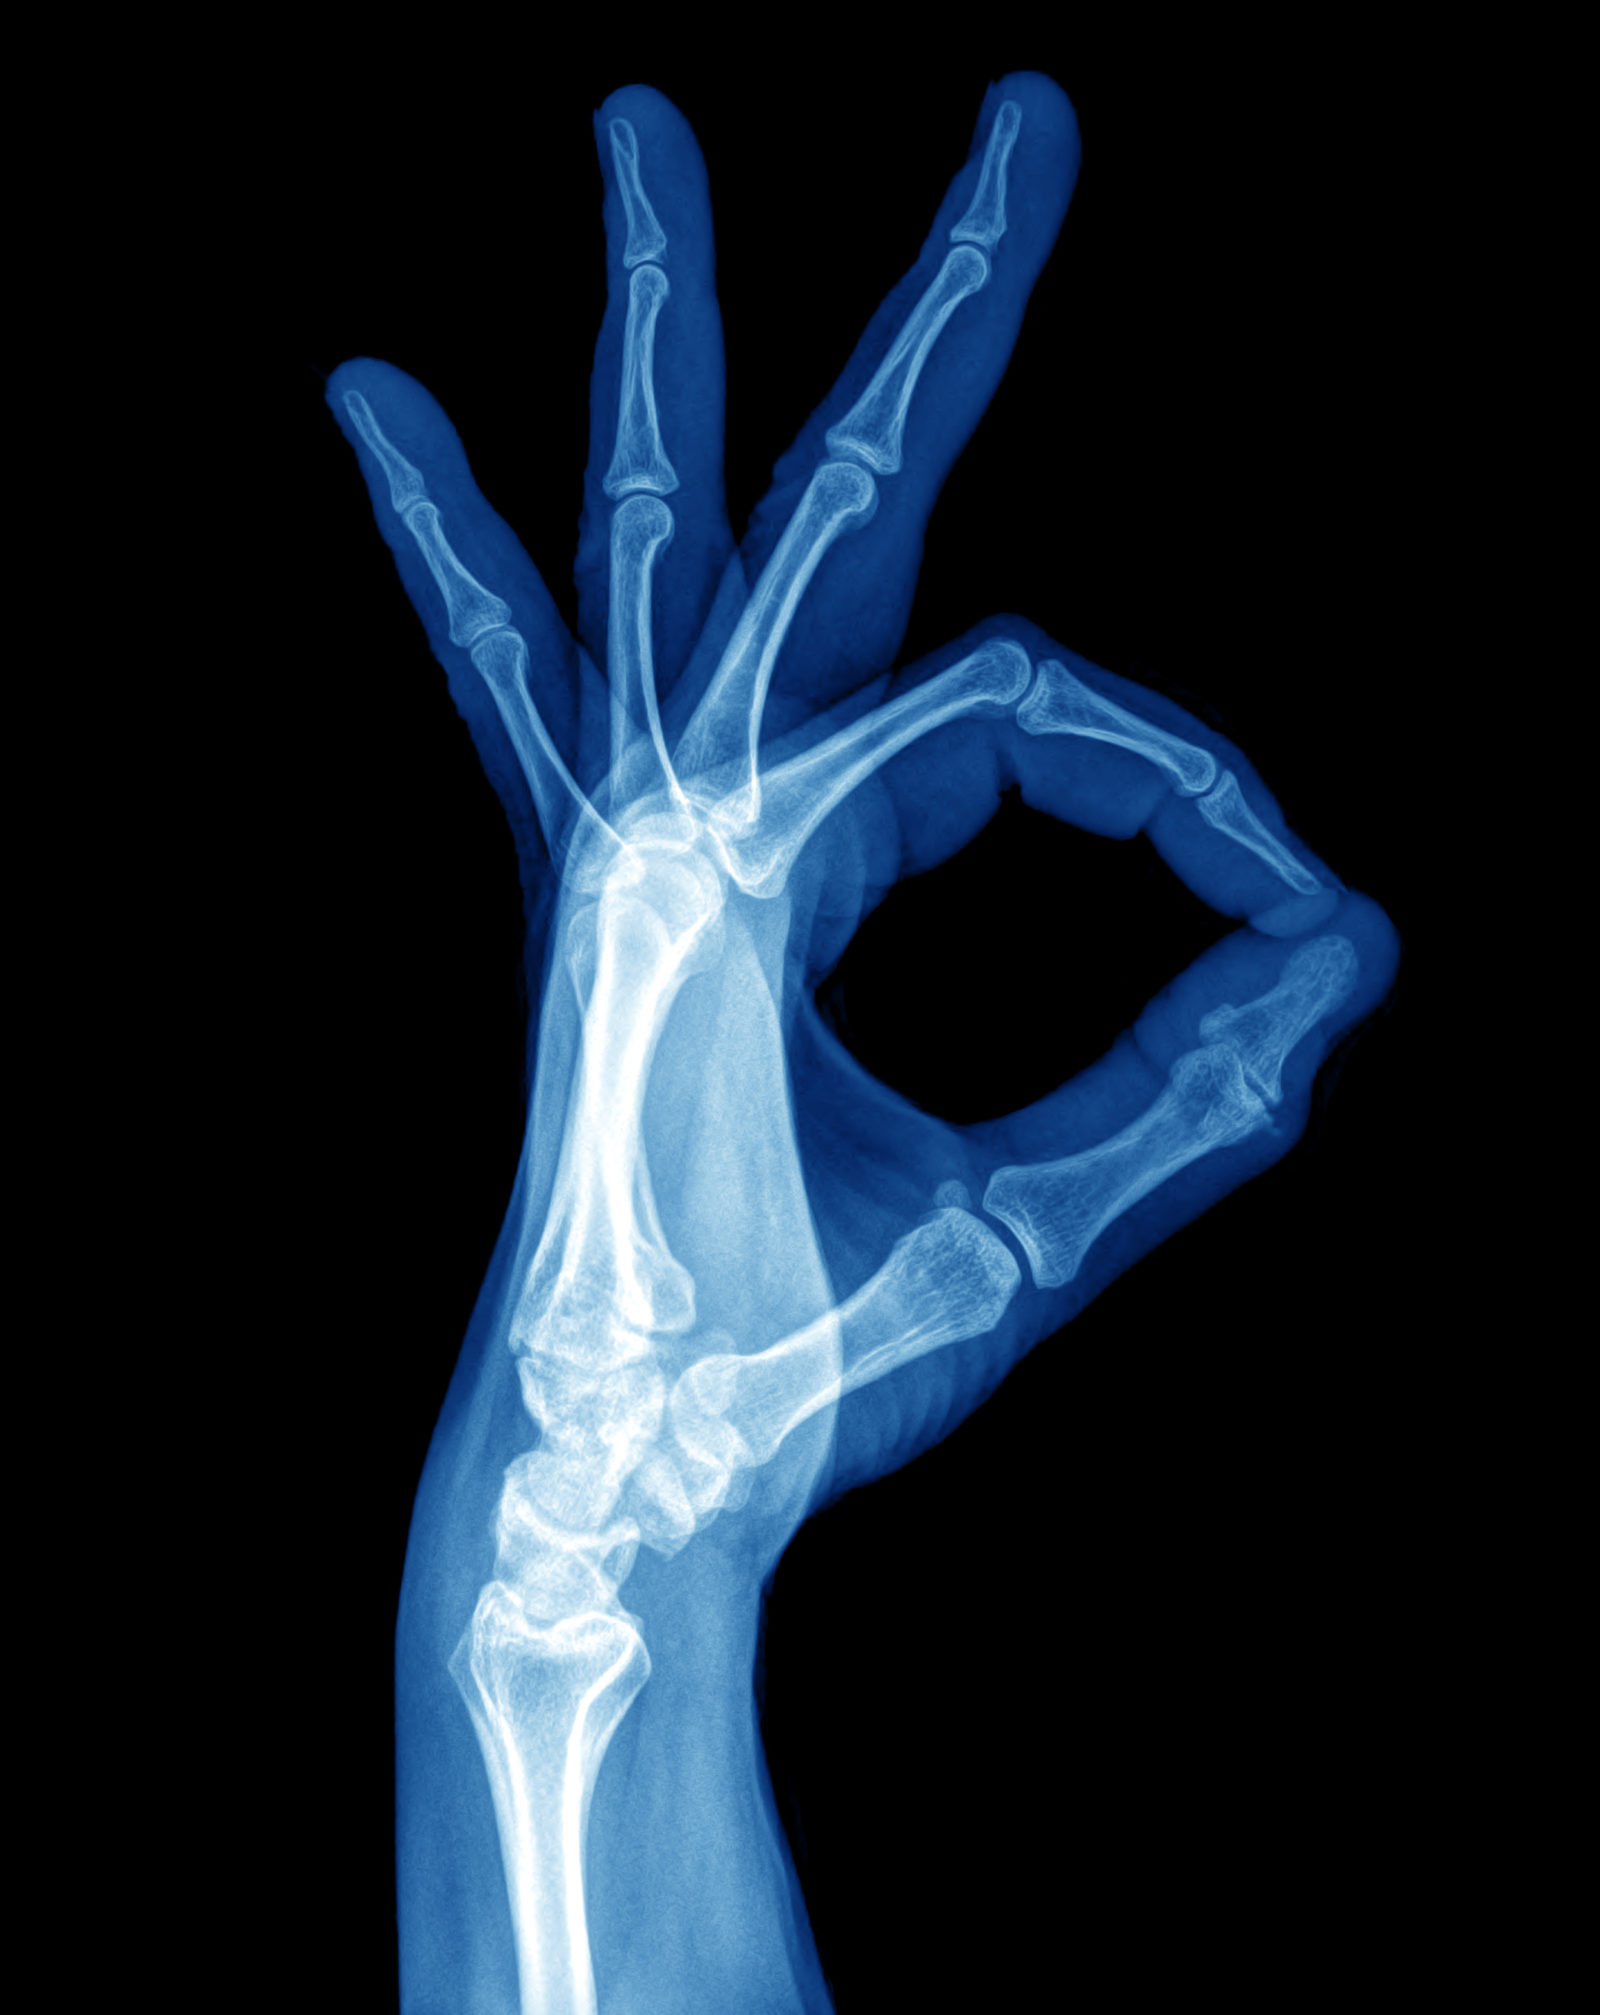 X-Ray image of hand human